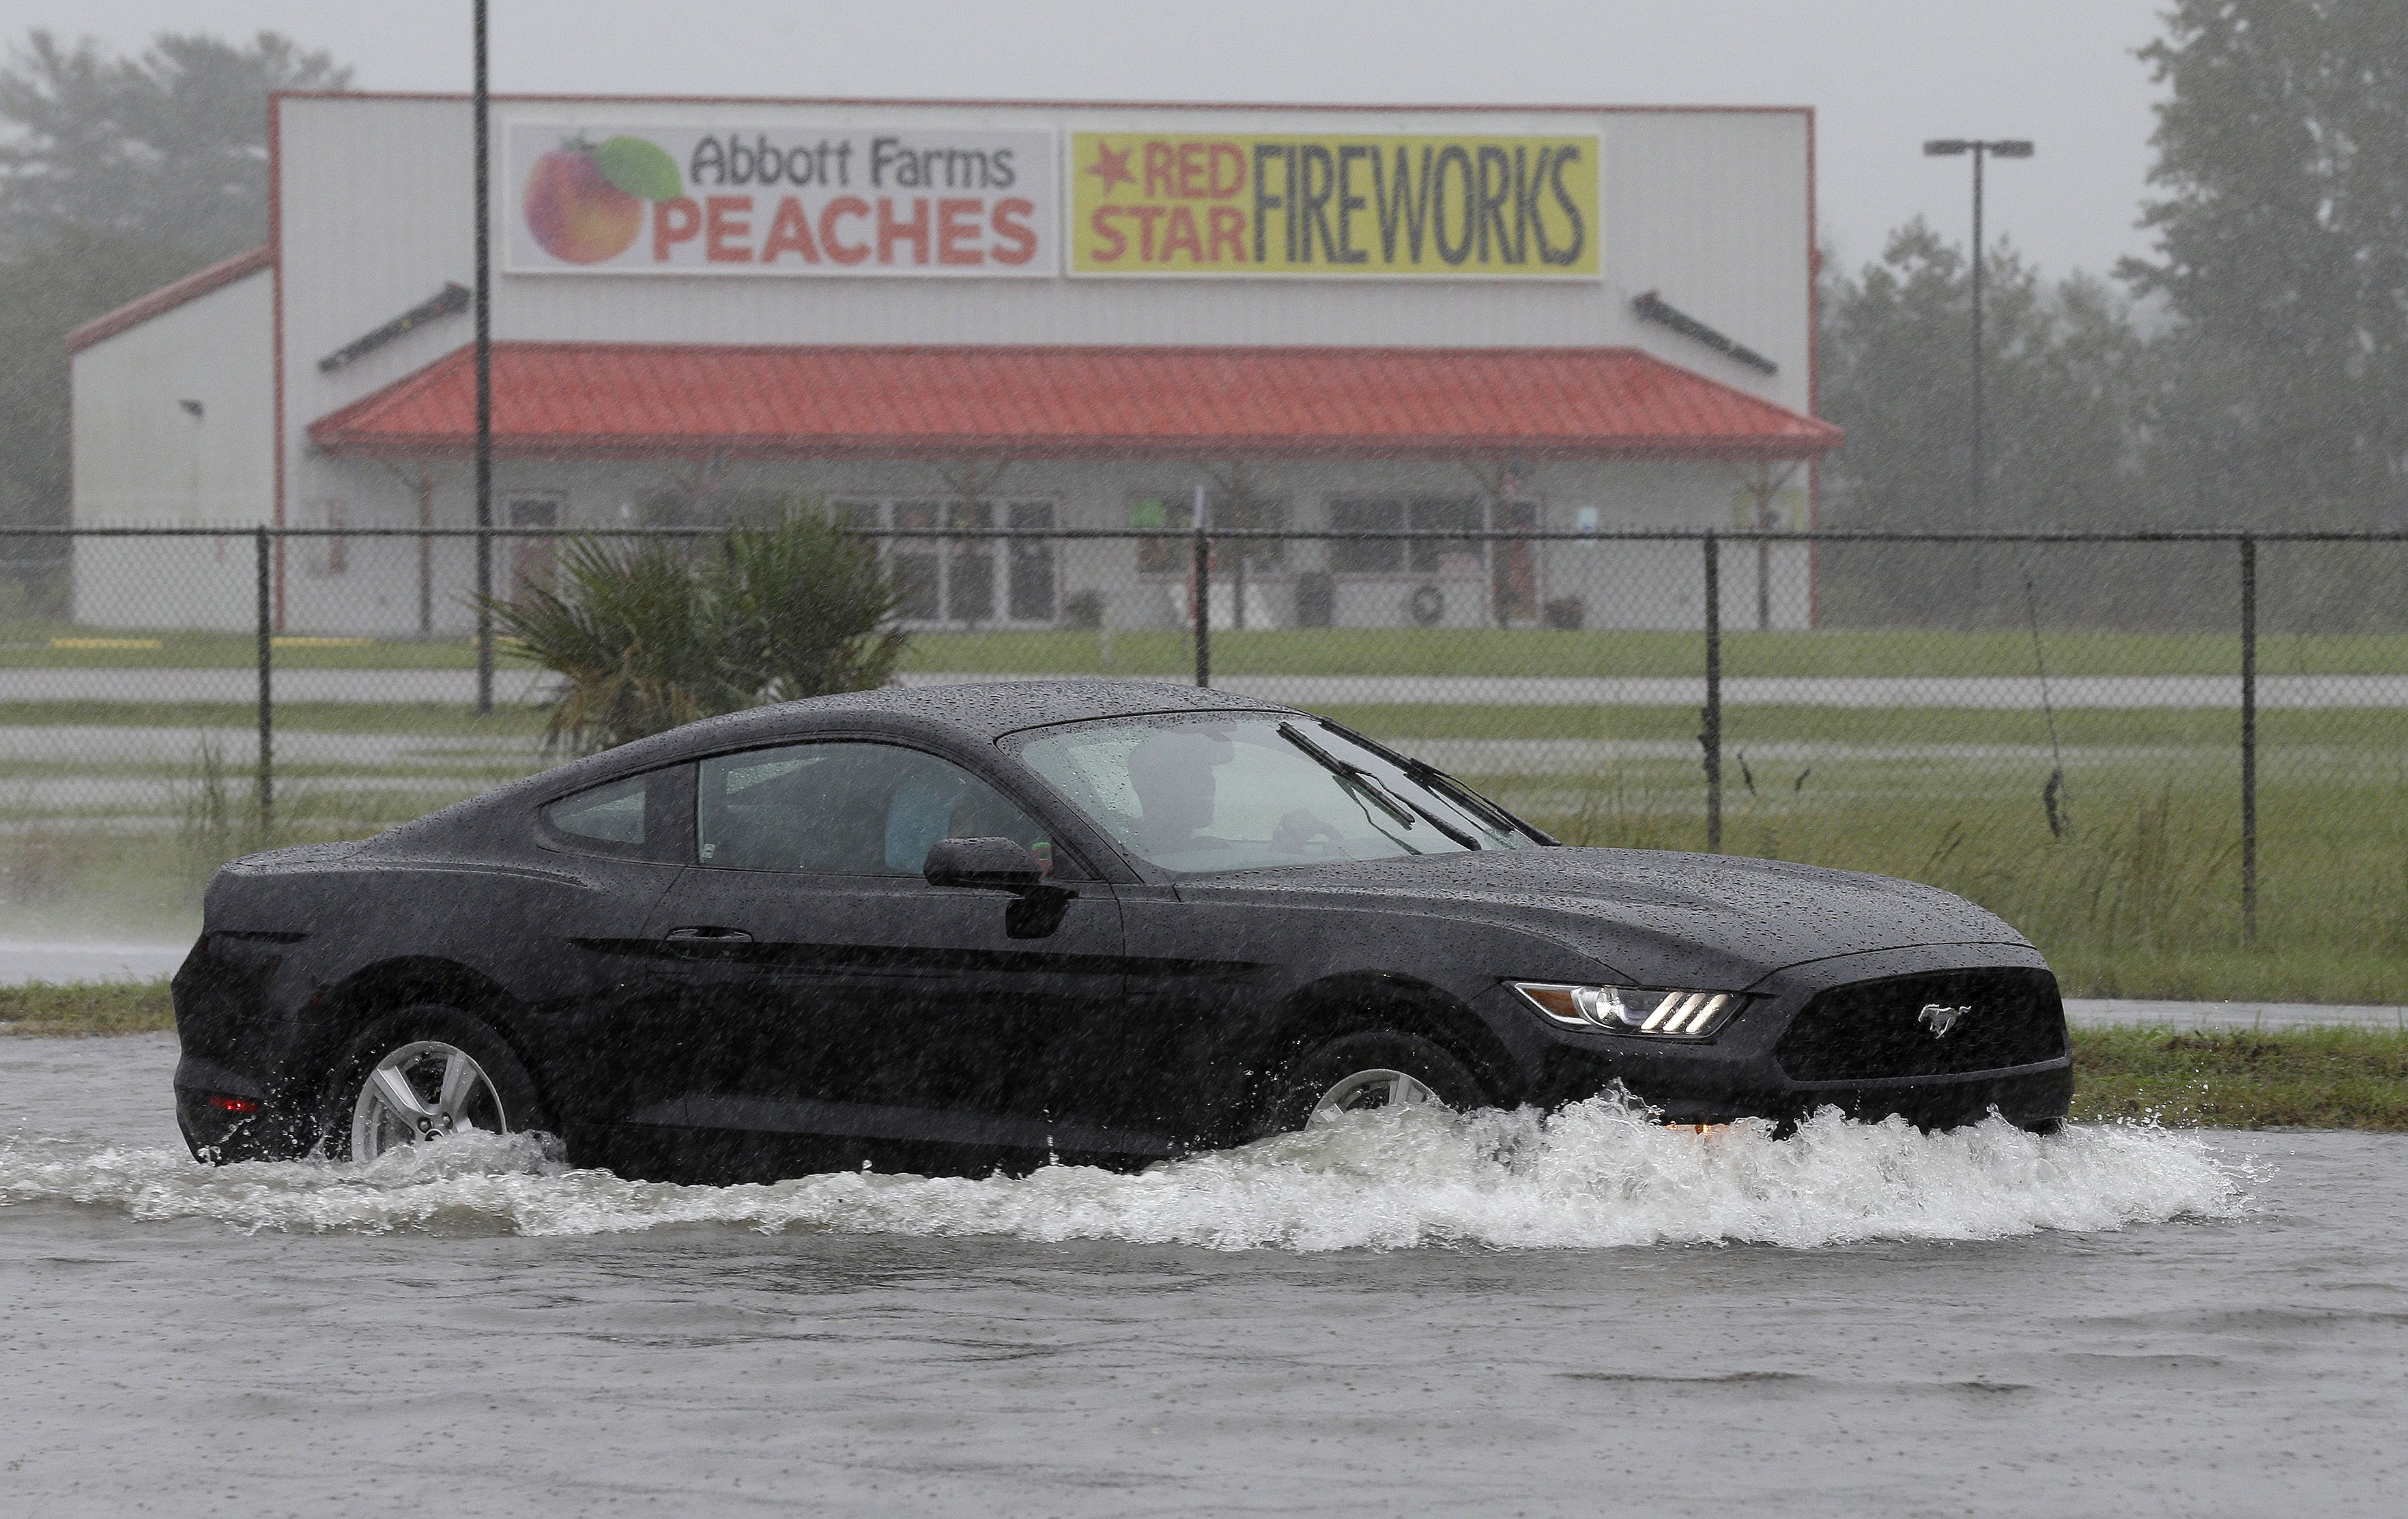 "A driver navigates a flooded road in Florence, S.C., Sunday, Oct. 4, 2015 as rain continues to cause flash flooding in some areas of the state. A dangerous rainstorm drenching the East Coast brought more misery Sunday to South Carolina, cutting power to thousands, forcing hundreds of water rescues and closing ""too many roads to name"" because of floodwaters. (AP Photo/Gerry Broome)"